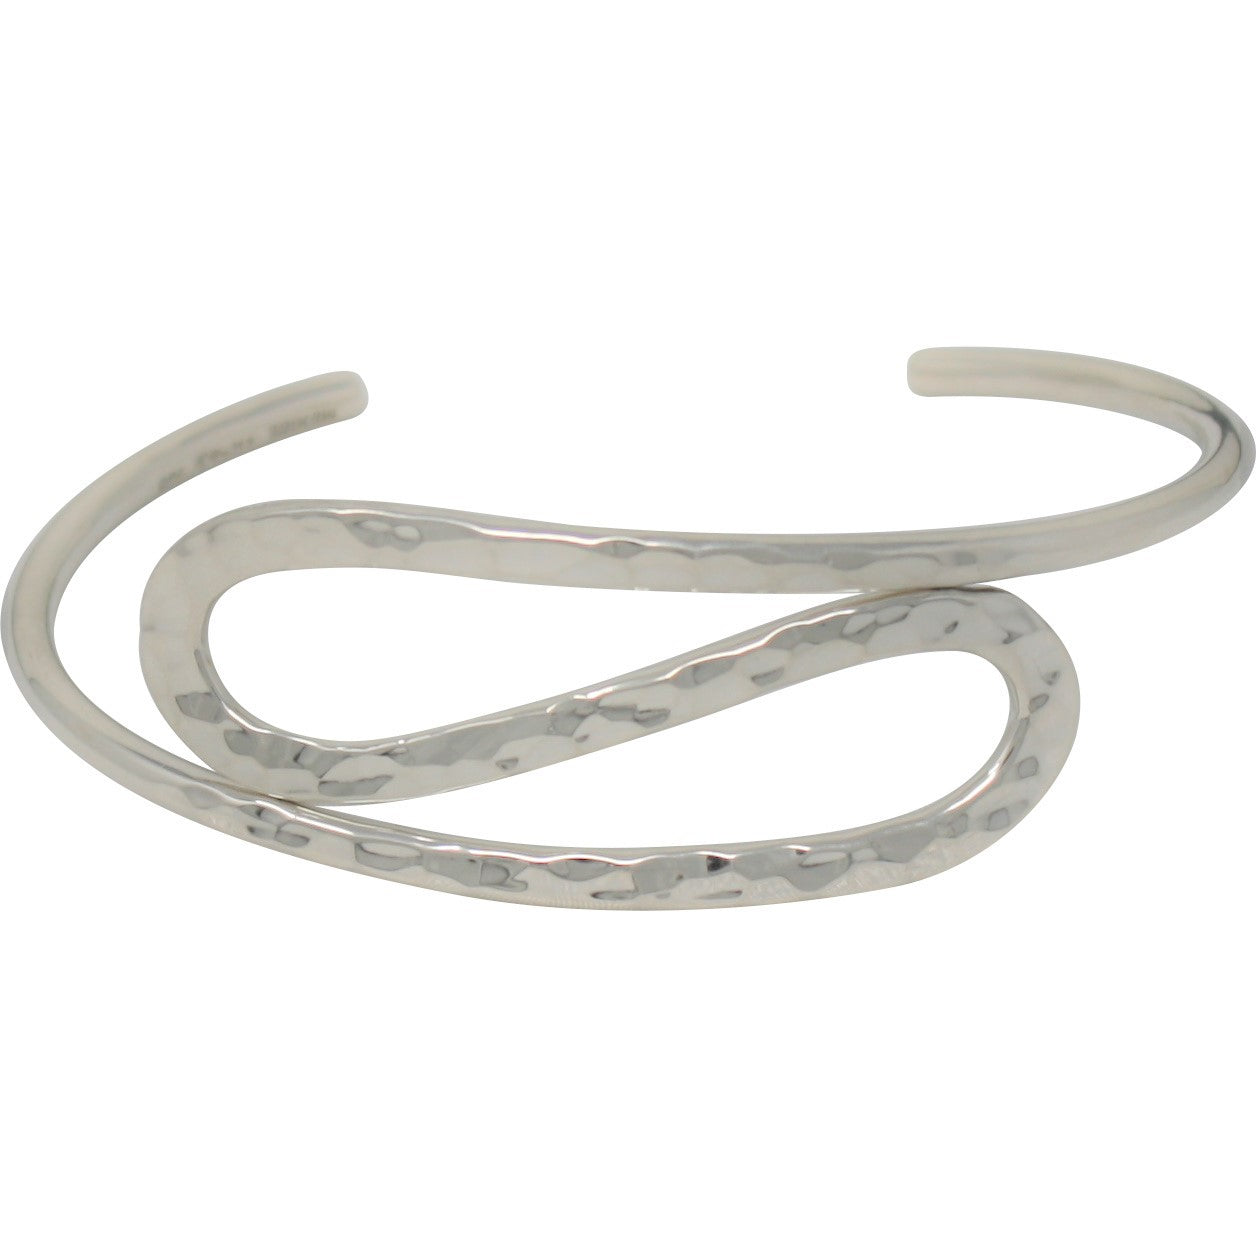 TM 15 HAMMERED DOUBLE LOOP CUFF